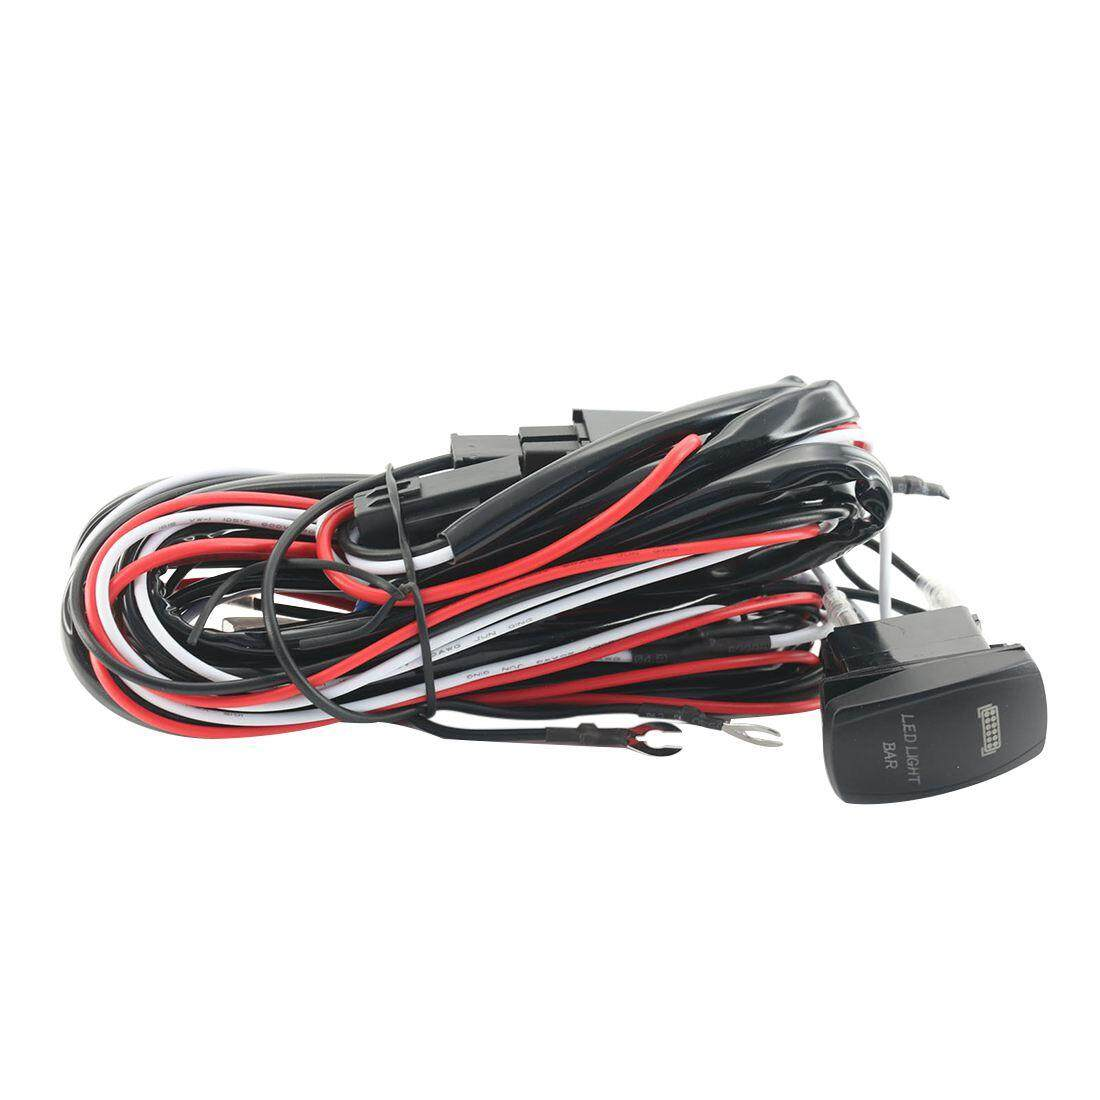 Promo 9Ft 40A 12V Power Switch Relay Wiring Harness Kit For Led Light Bar Up To 120W Intl